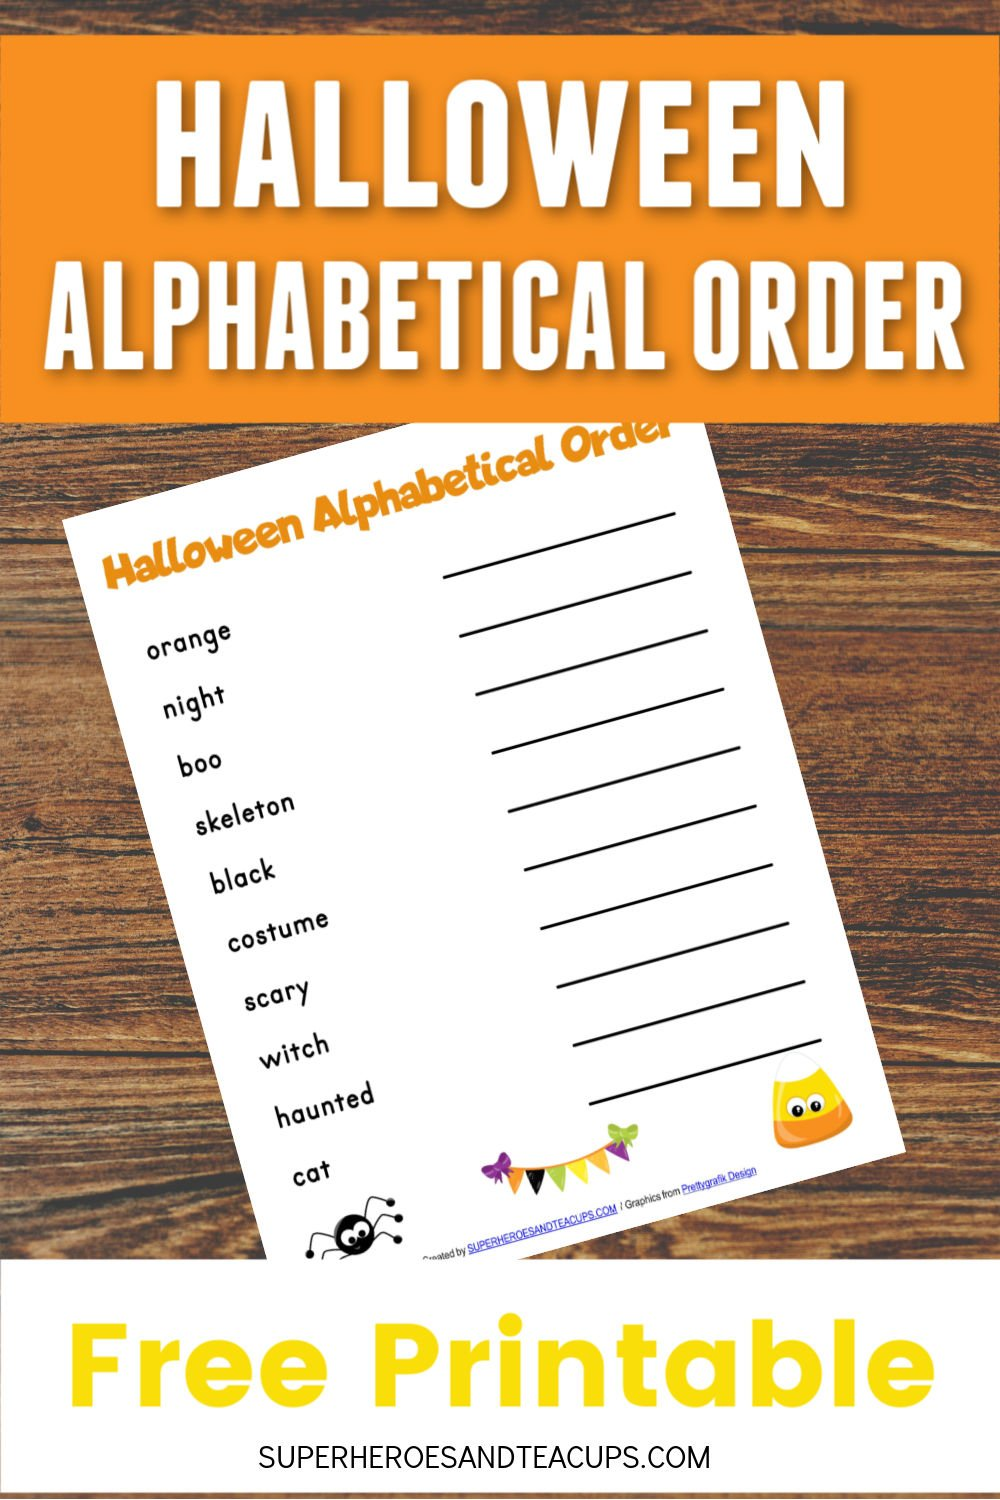 Halloween Alphabetical Order Free Printable